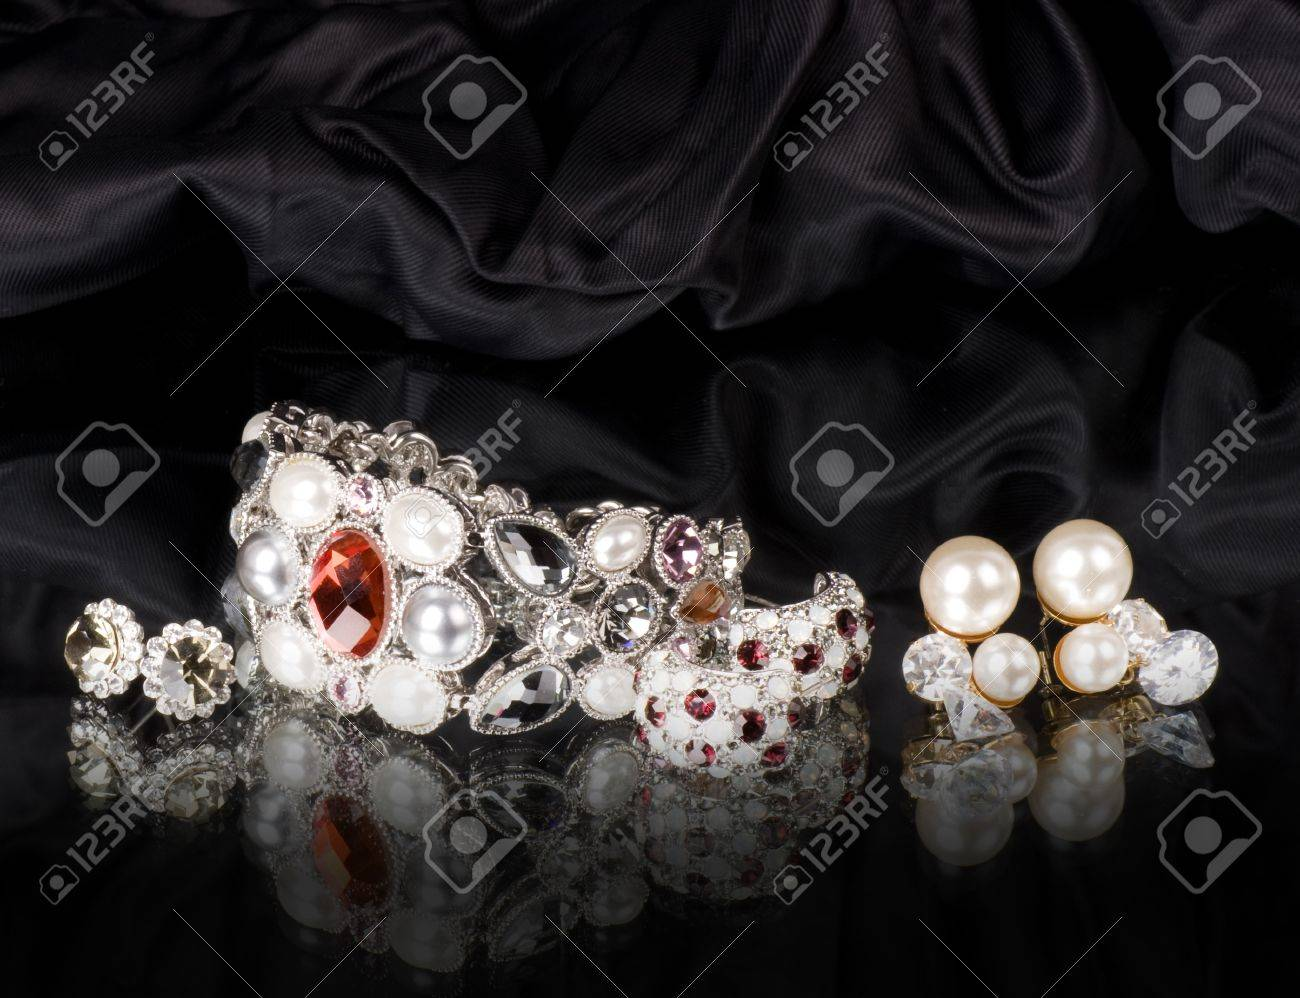 Silver jewelry on black background Stock Photo - 12886076